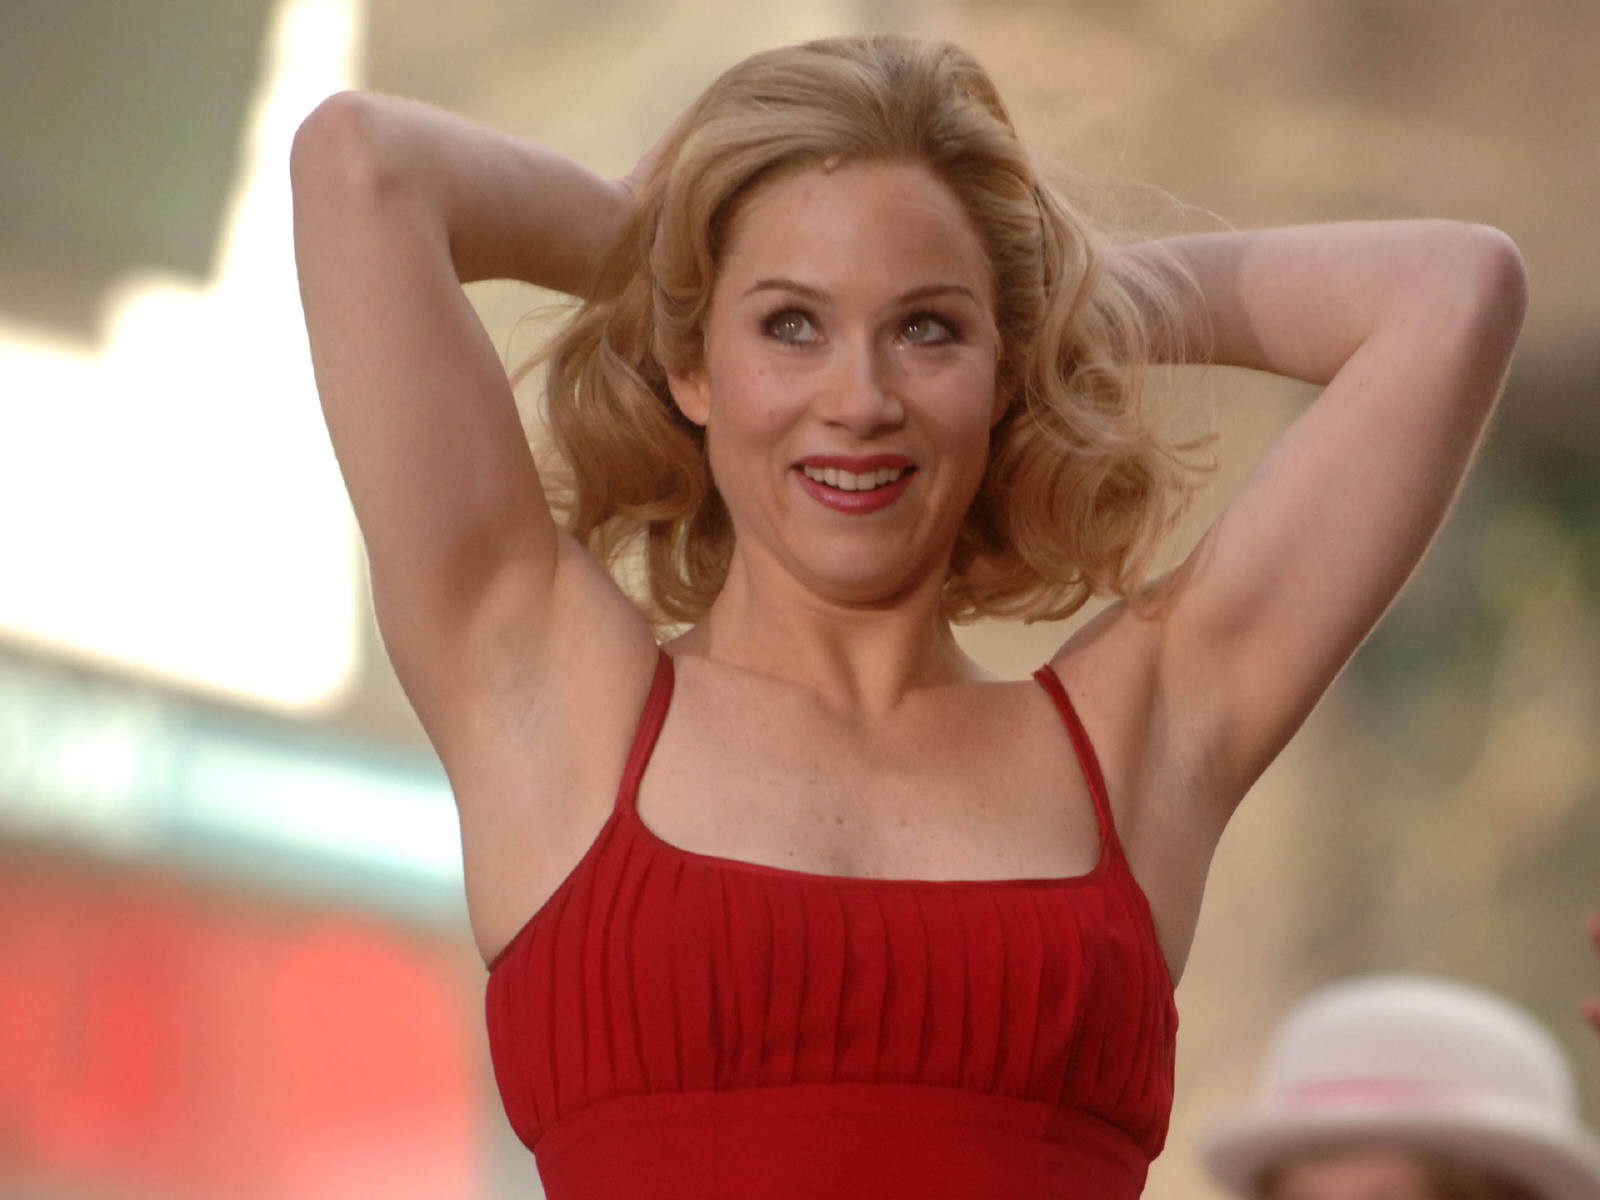 Christina Applegate 201 Gay Asian Porn Photos. After warming up to some hot kisses, Puerto Rican ...